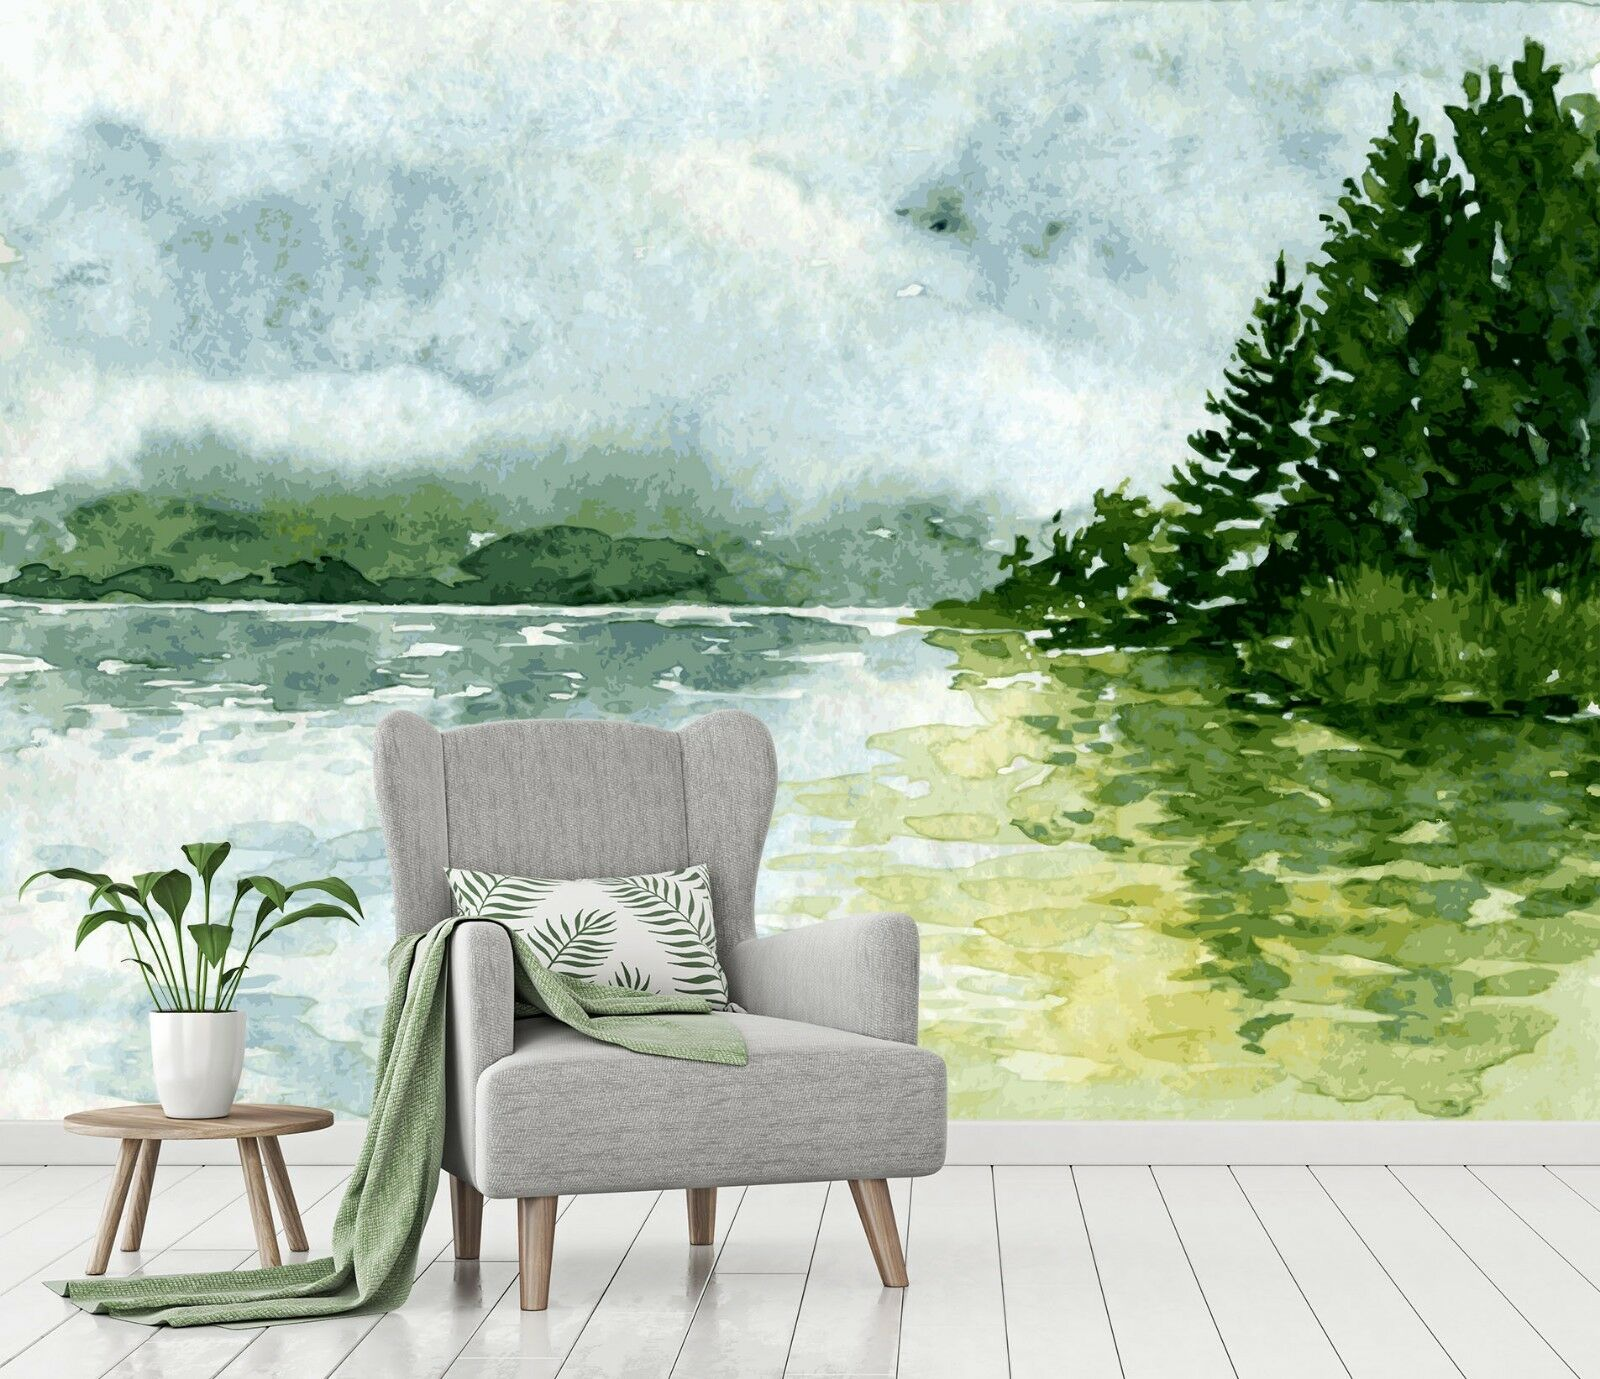 3D Lake Forest 824 Wall Paper Print Wall Decal Deco Indoor Wall Murals US Summer